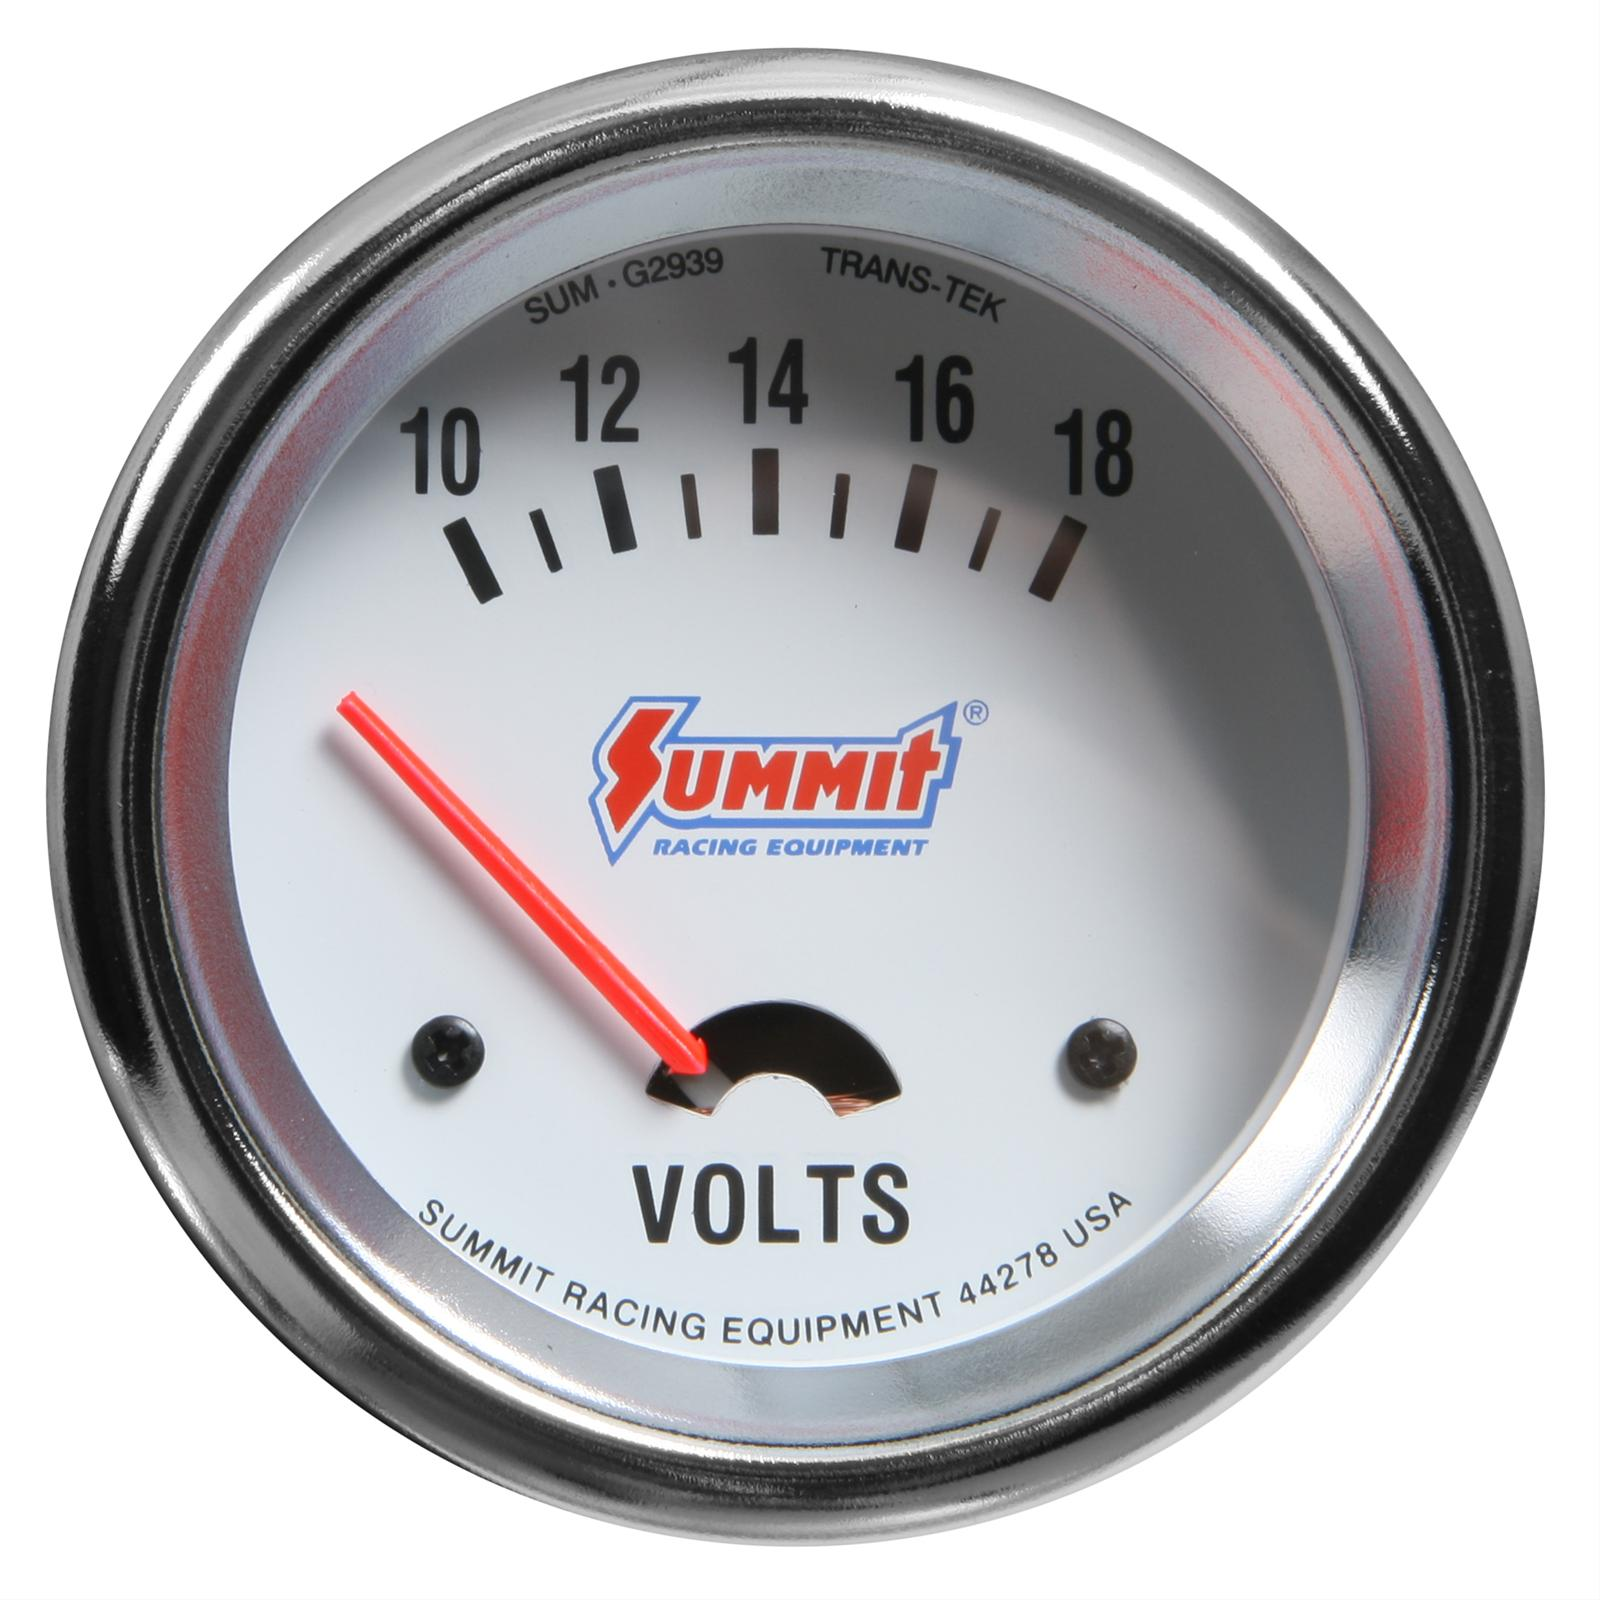 Summit Racing® Analog Electrical Gauges SUM-G2939 - Free Shipping on ...